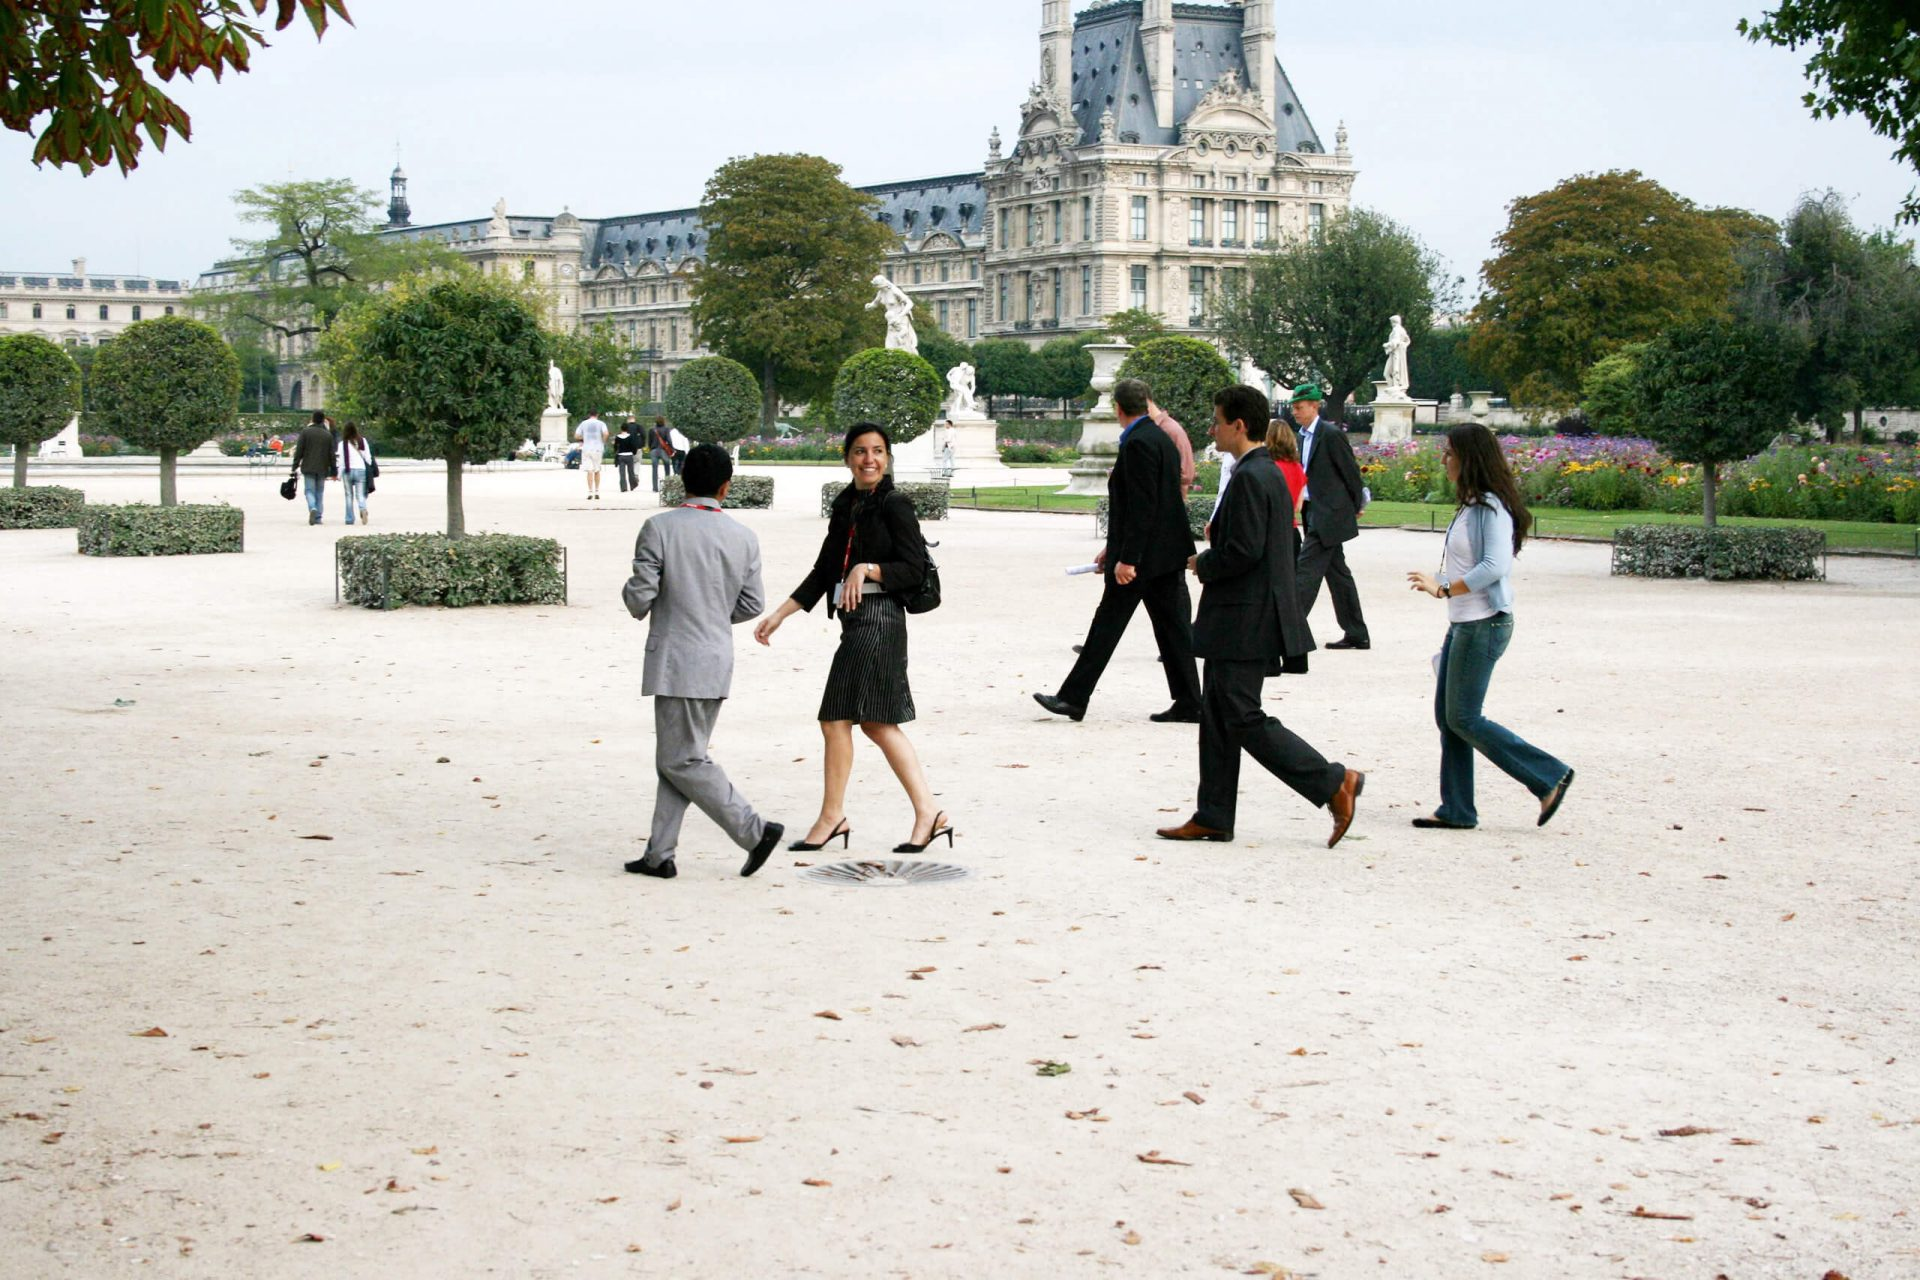 Team building rally, a team crosses the Tuileries Gardens towards the Louvre